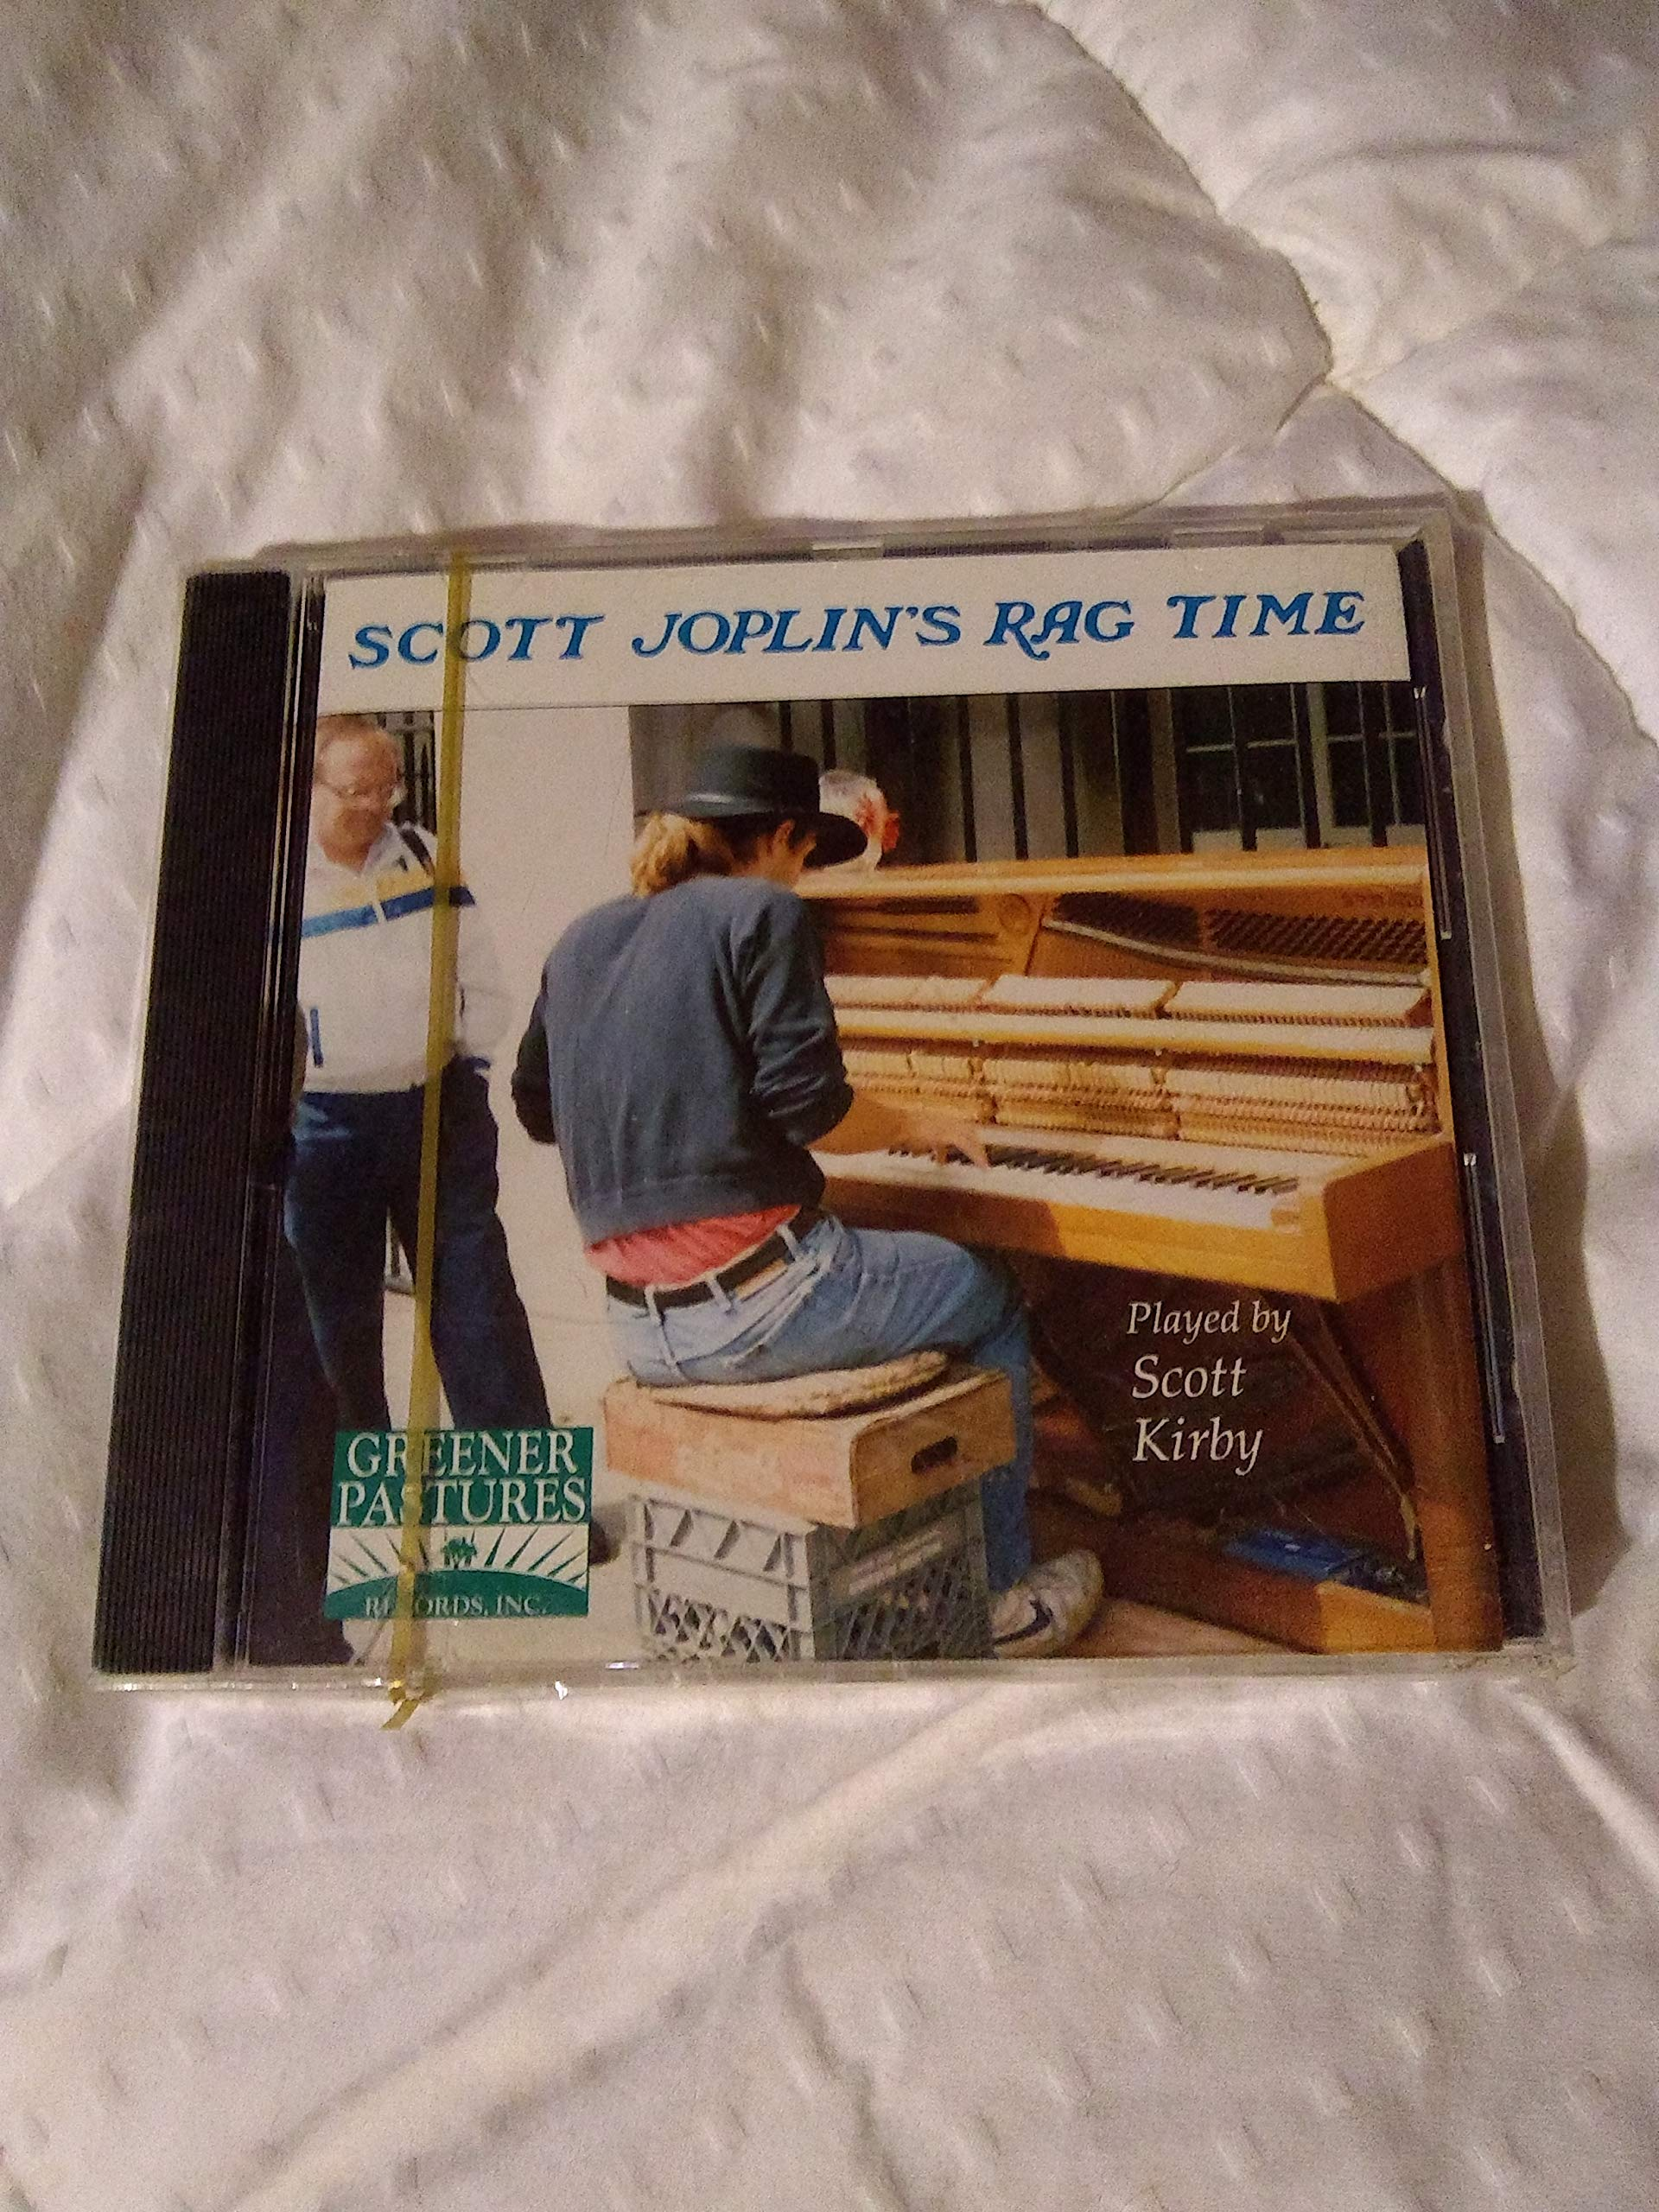 Scott Joplin's Rag Time